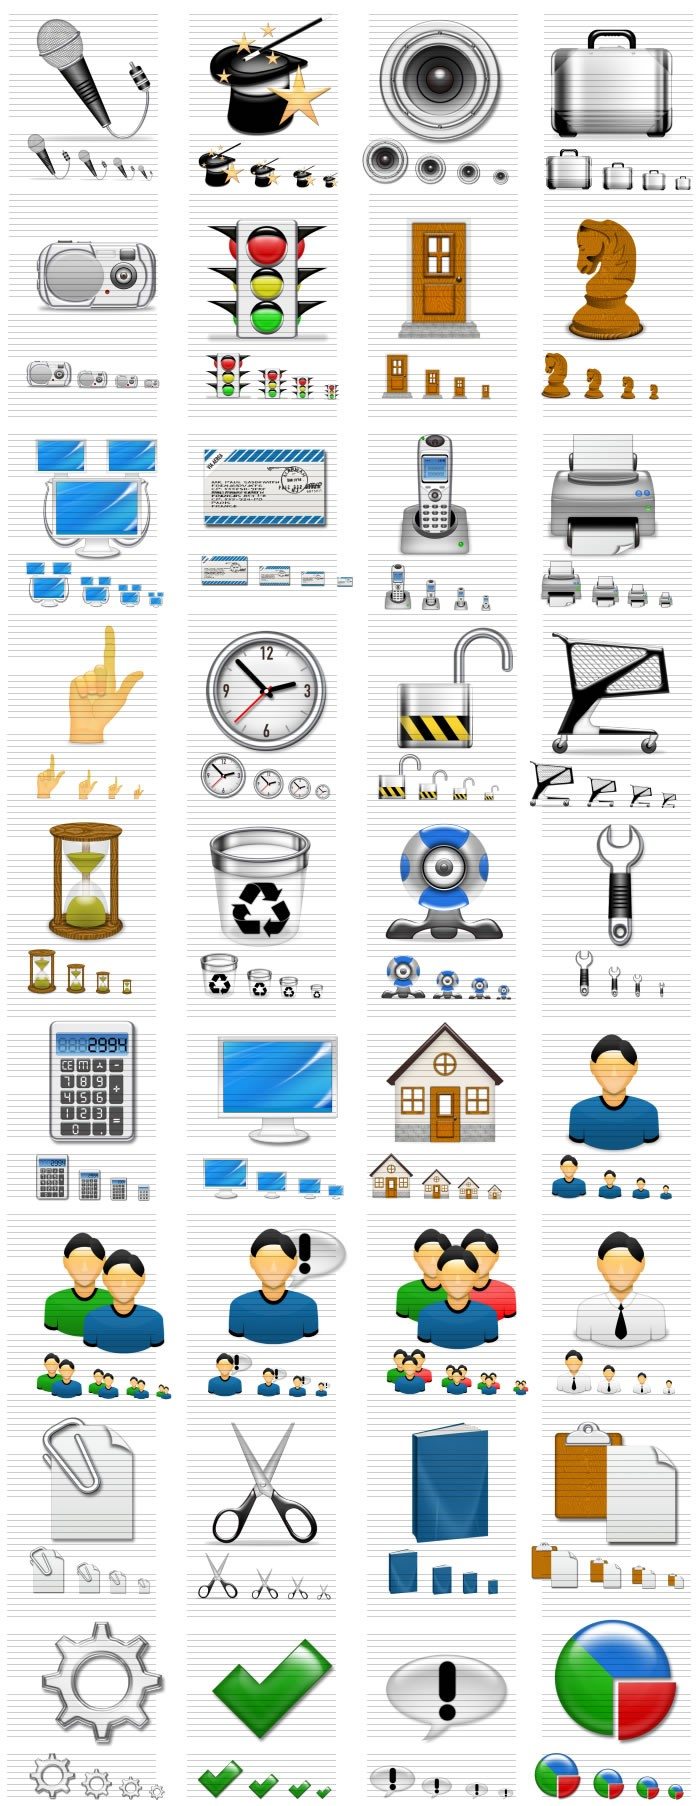 Iconshock Impressions - Professional icons for you 1.0 ...